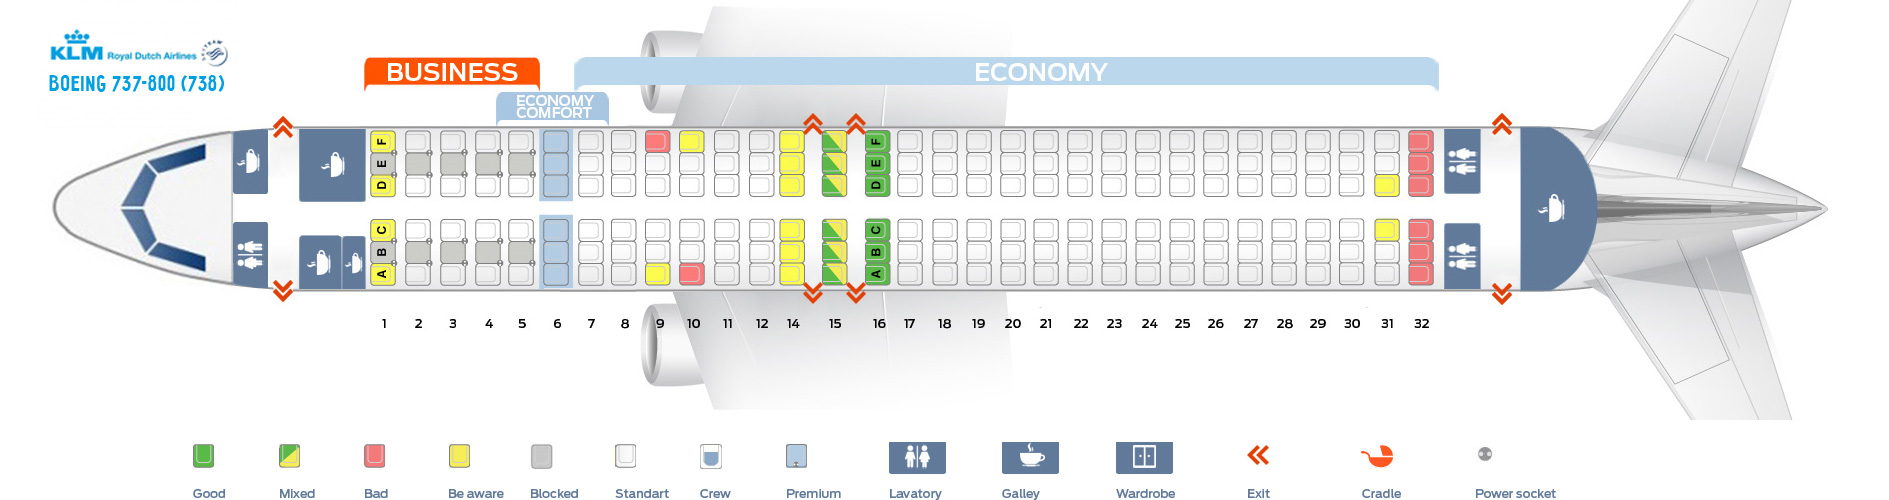 Seat Map Boeing 737-800 KLM Airlines